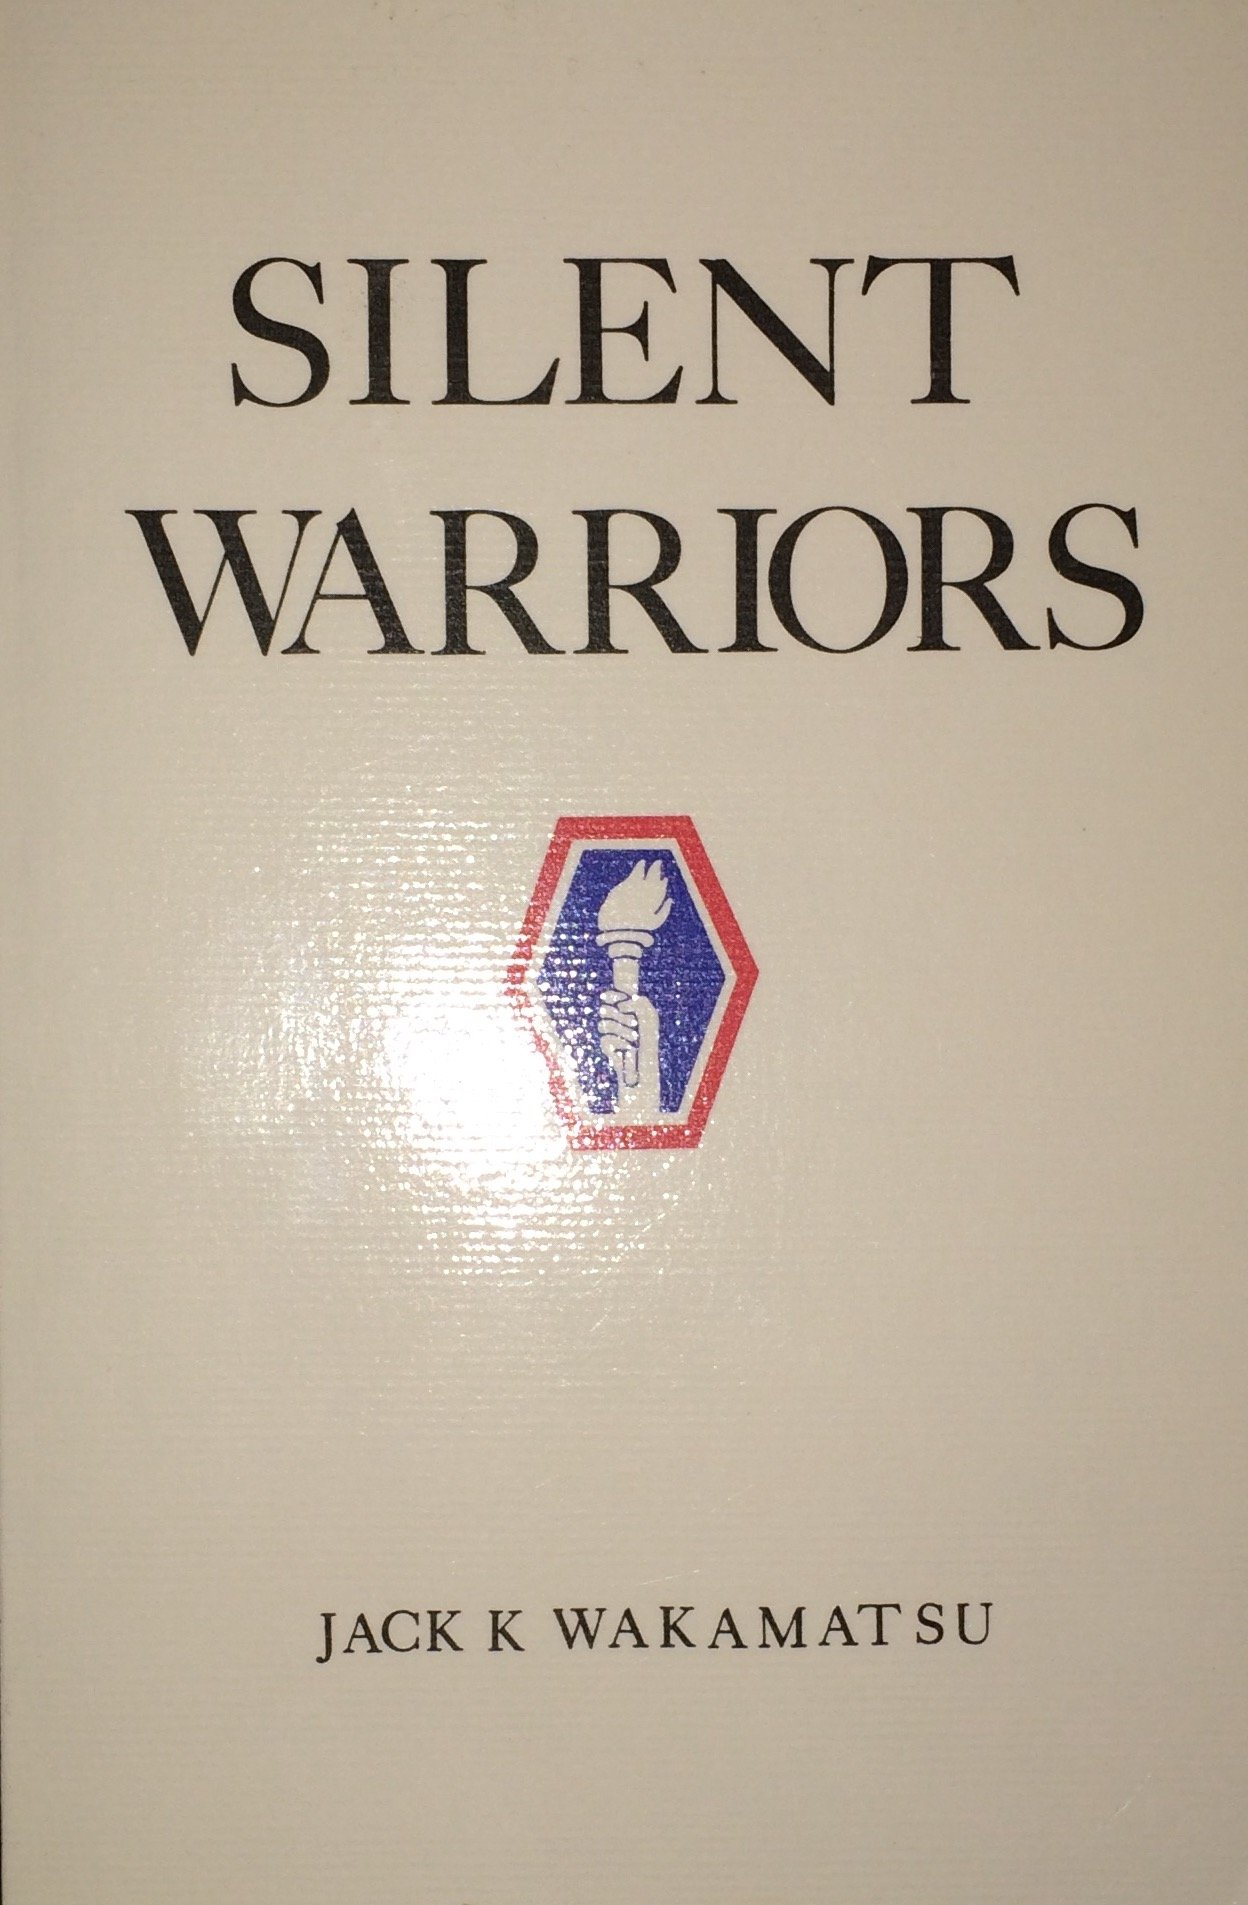 Silent Warriors: A Memoir of America's 442nd Regimental Combat Team